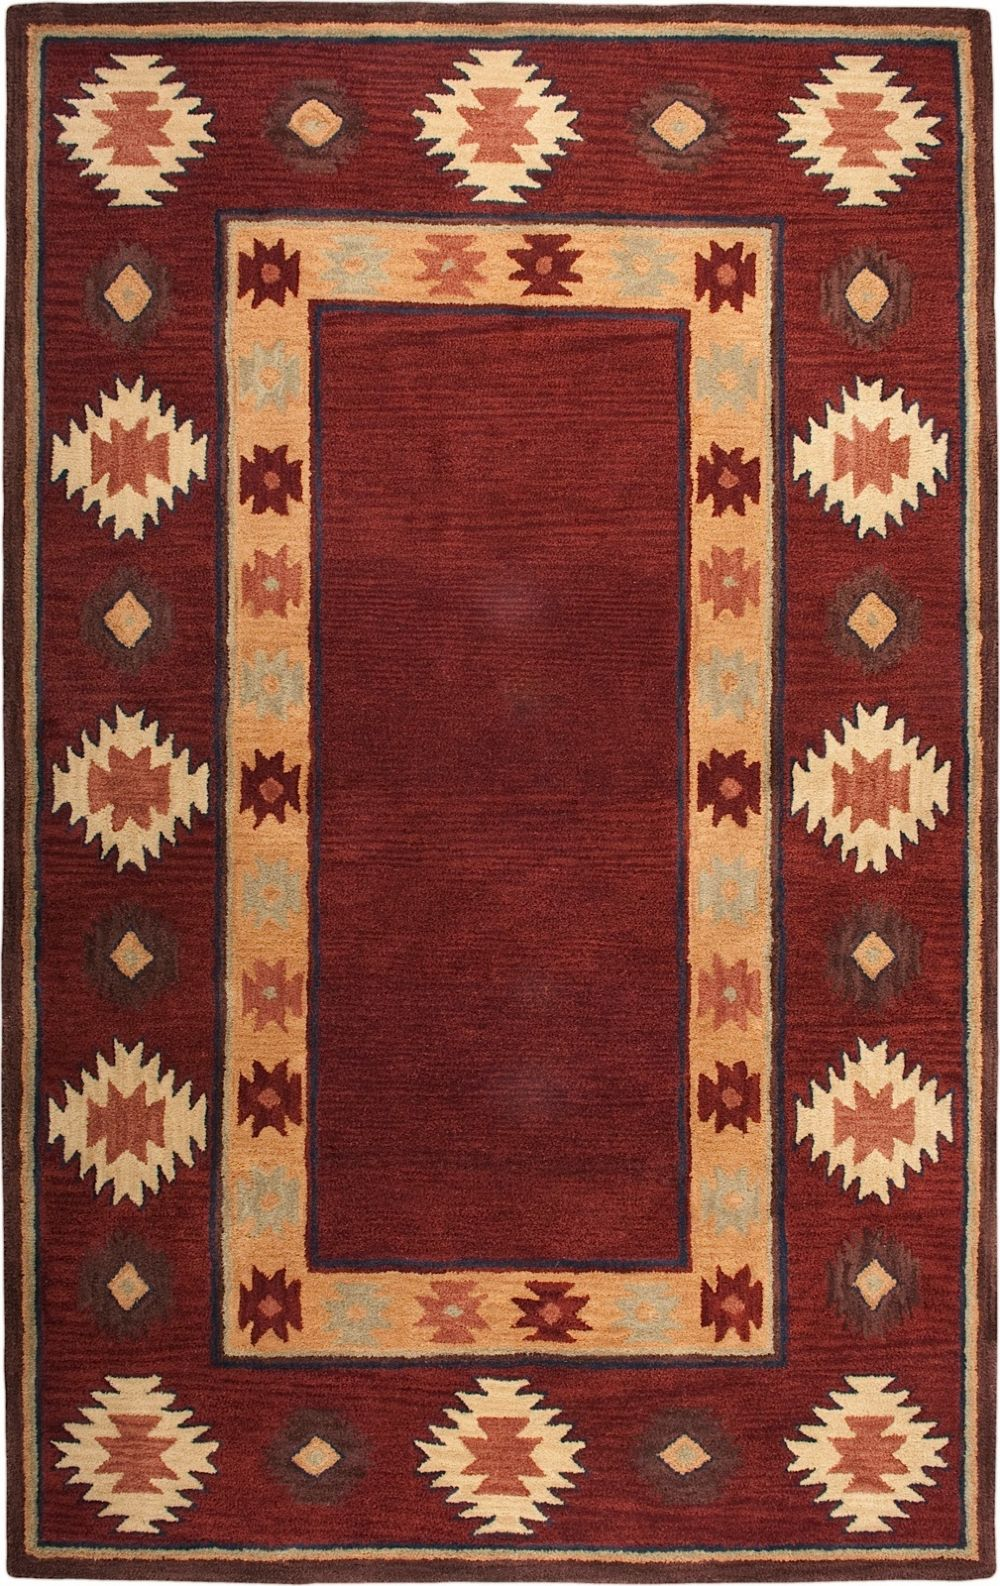 Rizzy Rugs Southwest Southwestern Lodge Area Rug Collection  RugPalcom  SU20144200